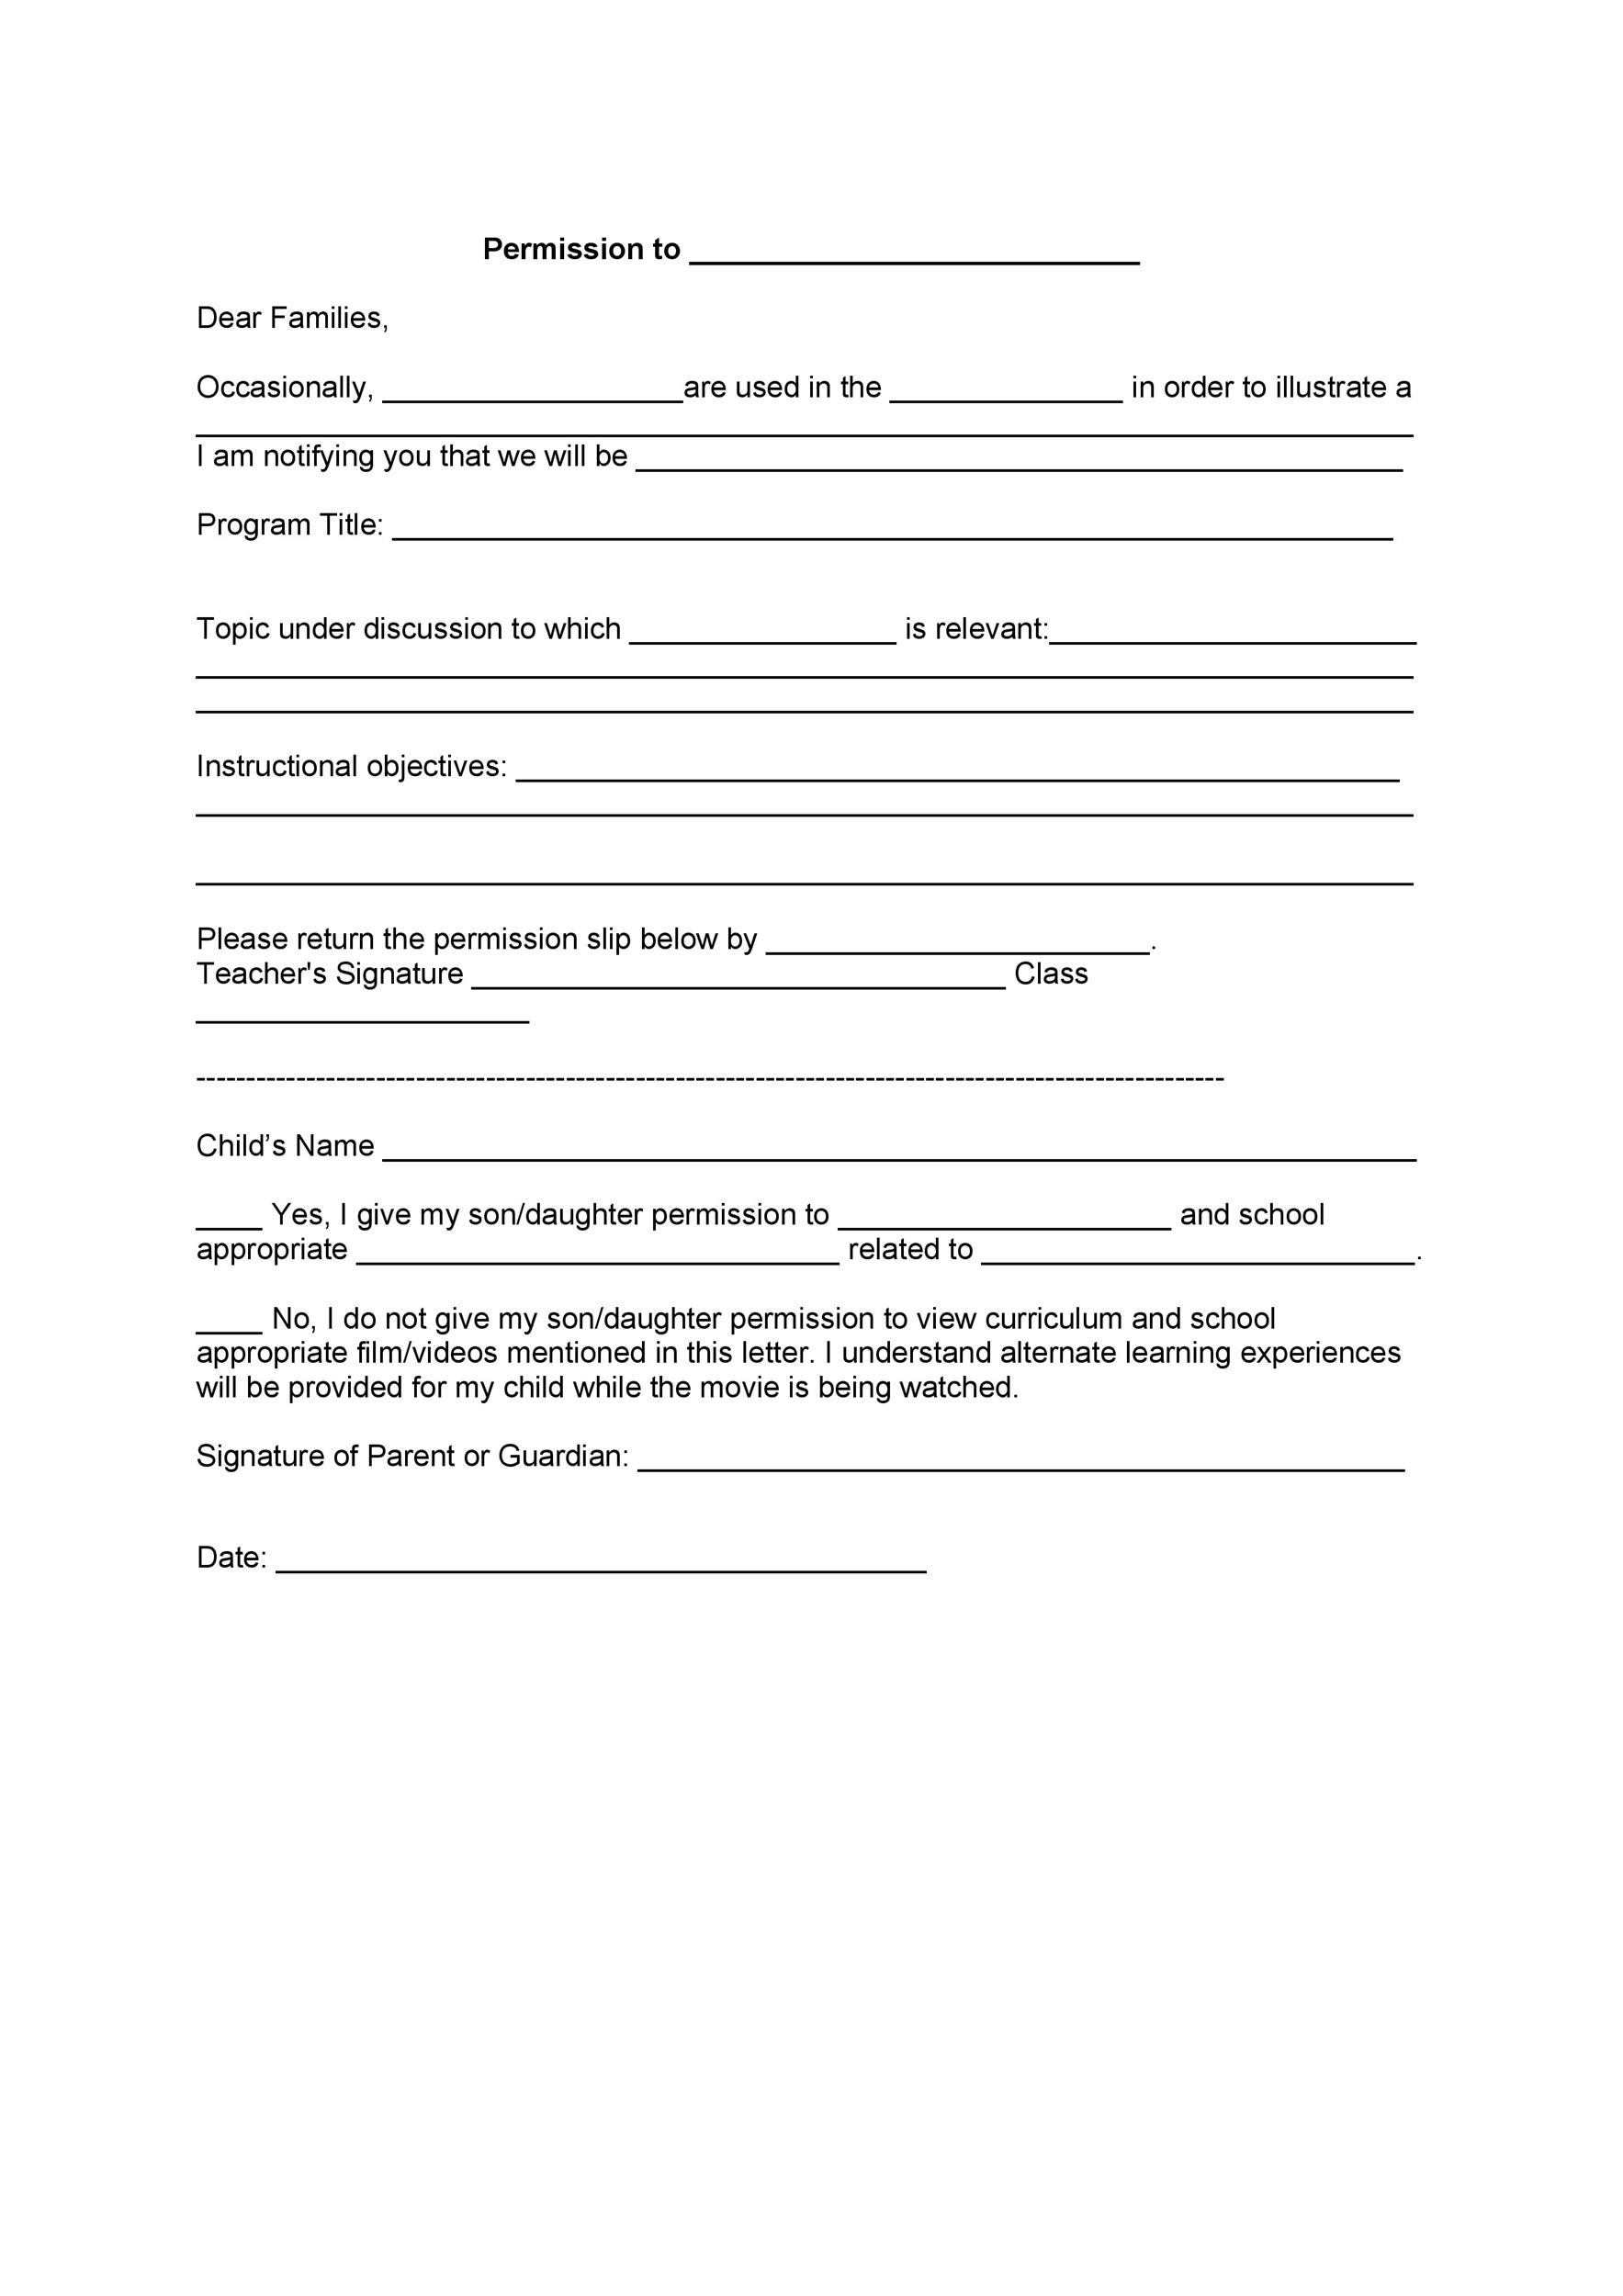 Permission slip templates field trip forms printable permission slip 16 altavistaventures